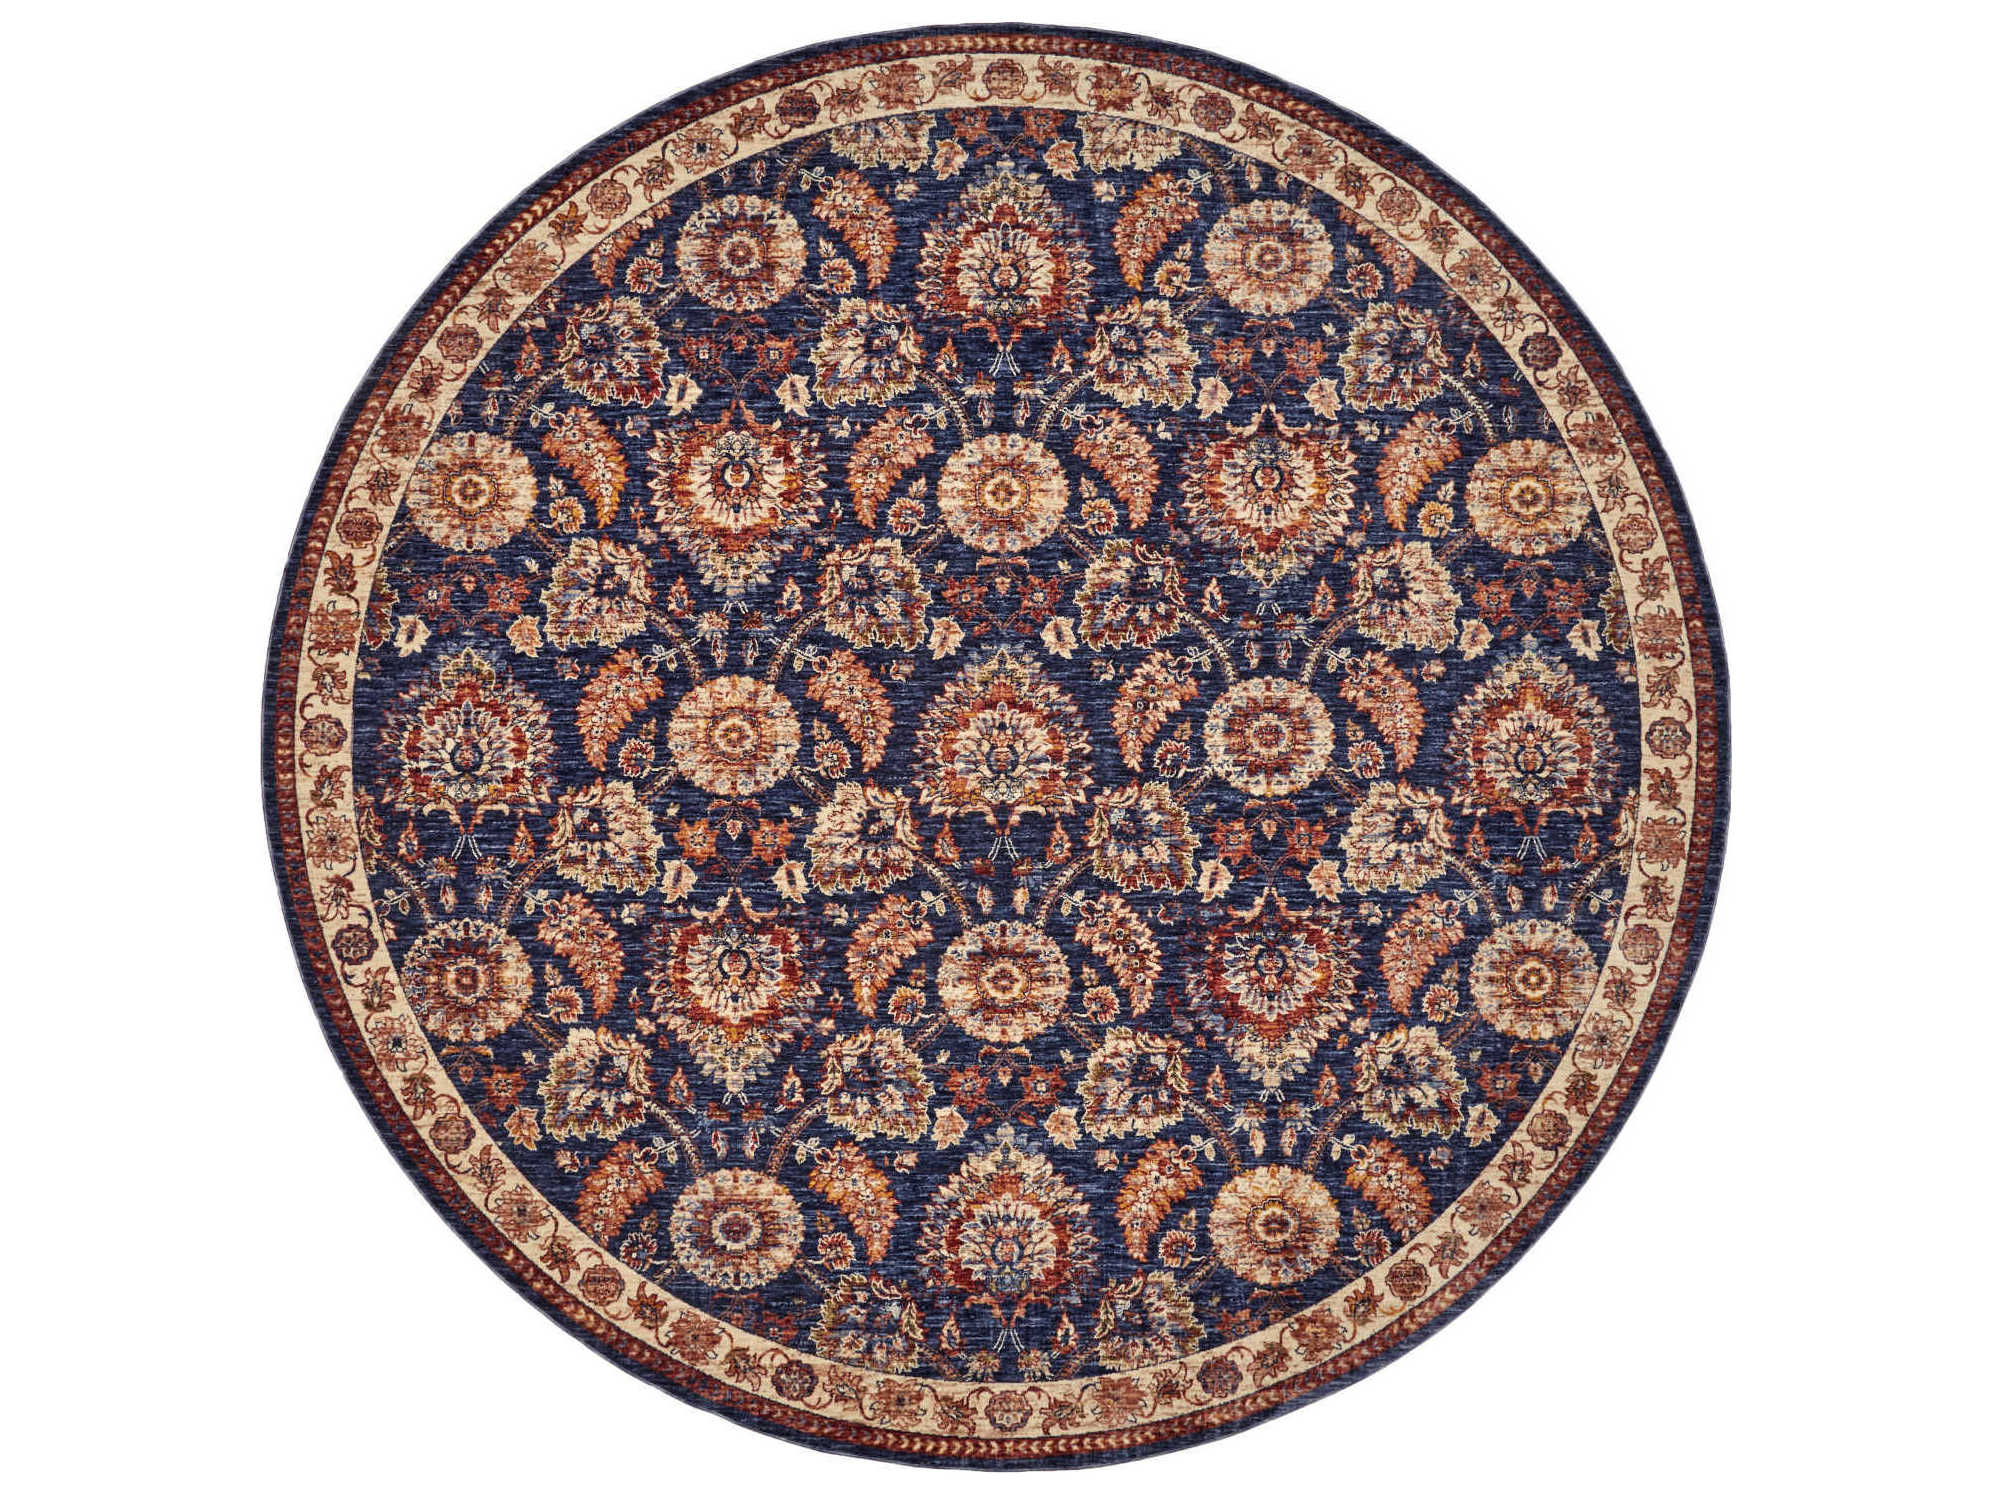 Feizy Rugs Hammond Blue Rust Round Area Rug